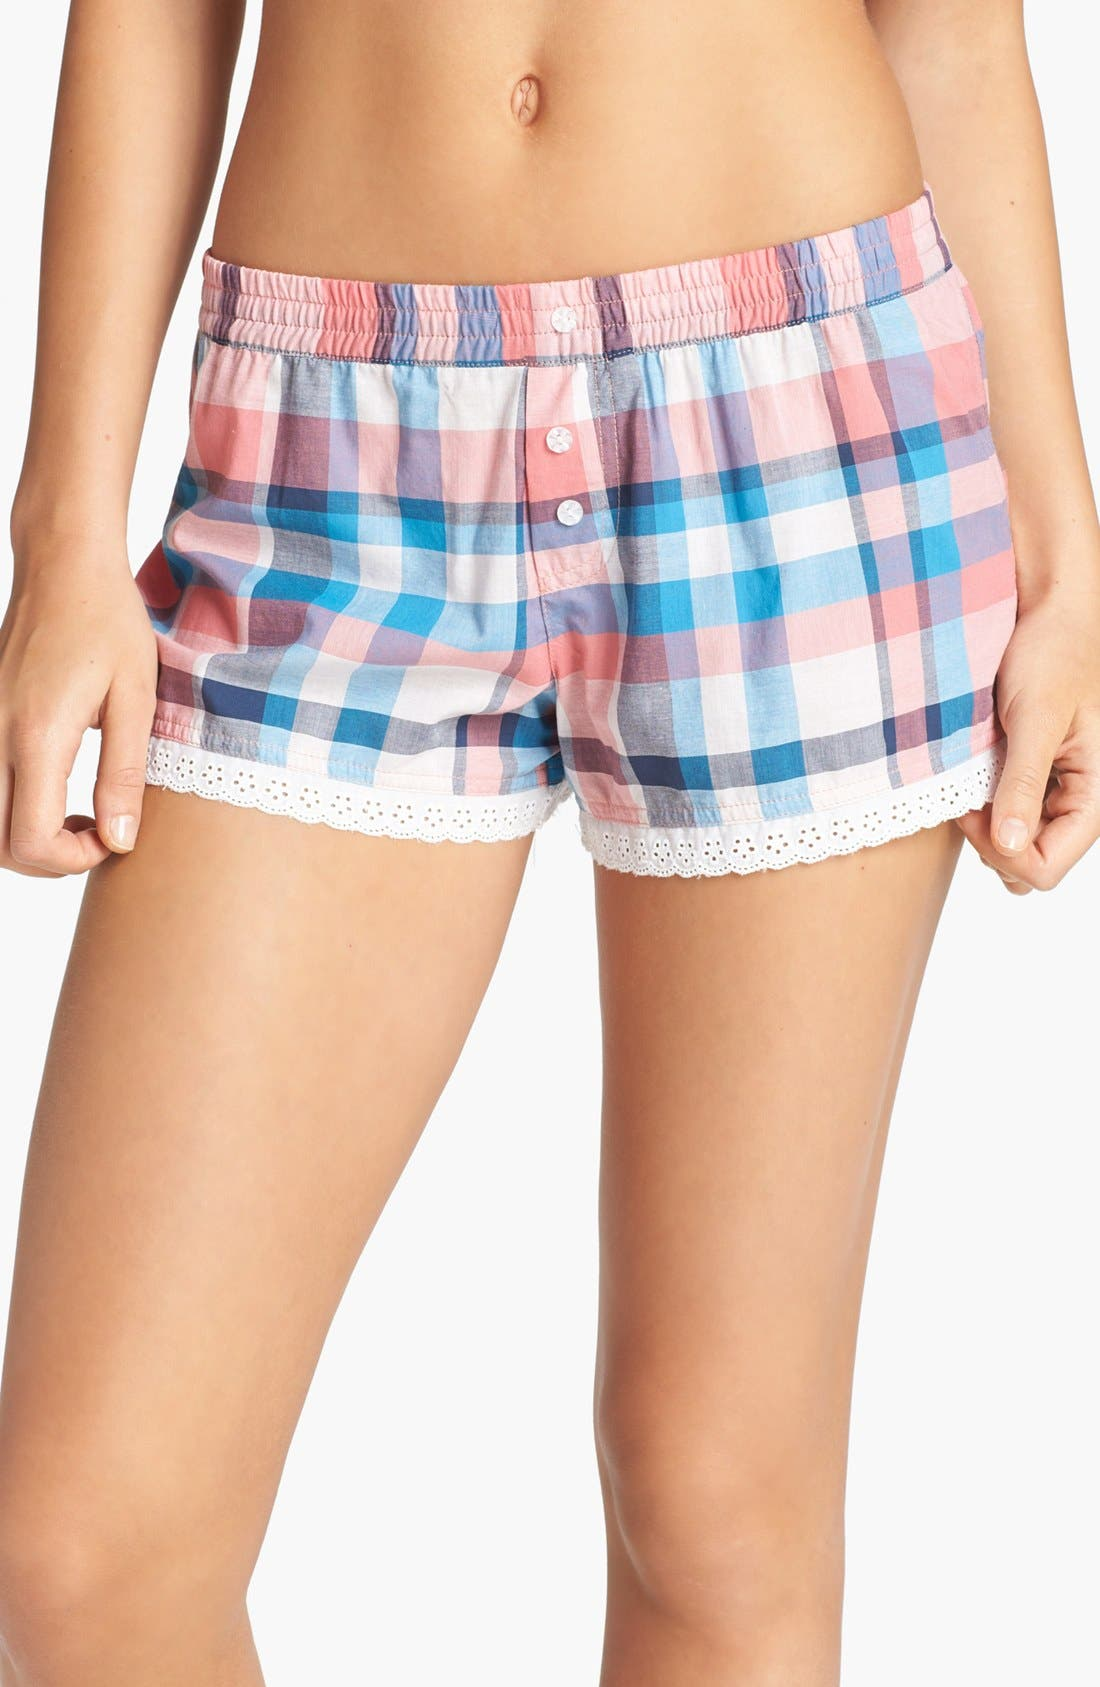 Alternate Image 1 Selected - BP. Undercover 'Giddy Up' Shorts (Juniors)